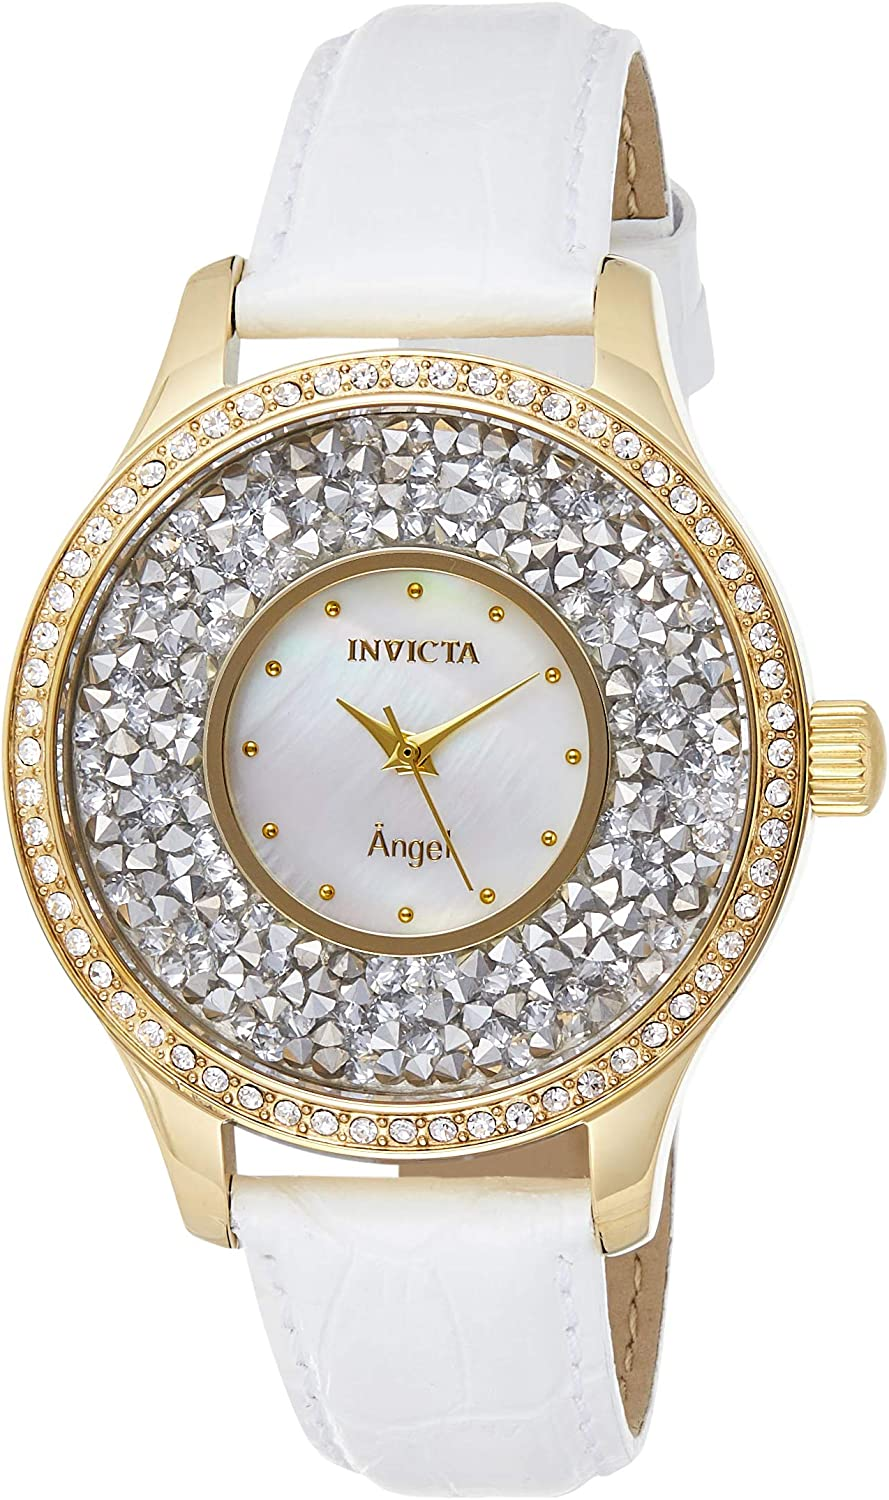 Invicta Women's Angel Stainless Steel Quartz Watch with Leather Calfskin Strap, White, 17 (Model: 24589)